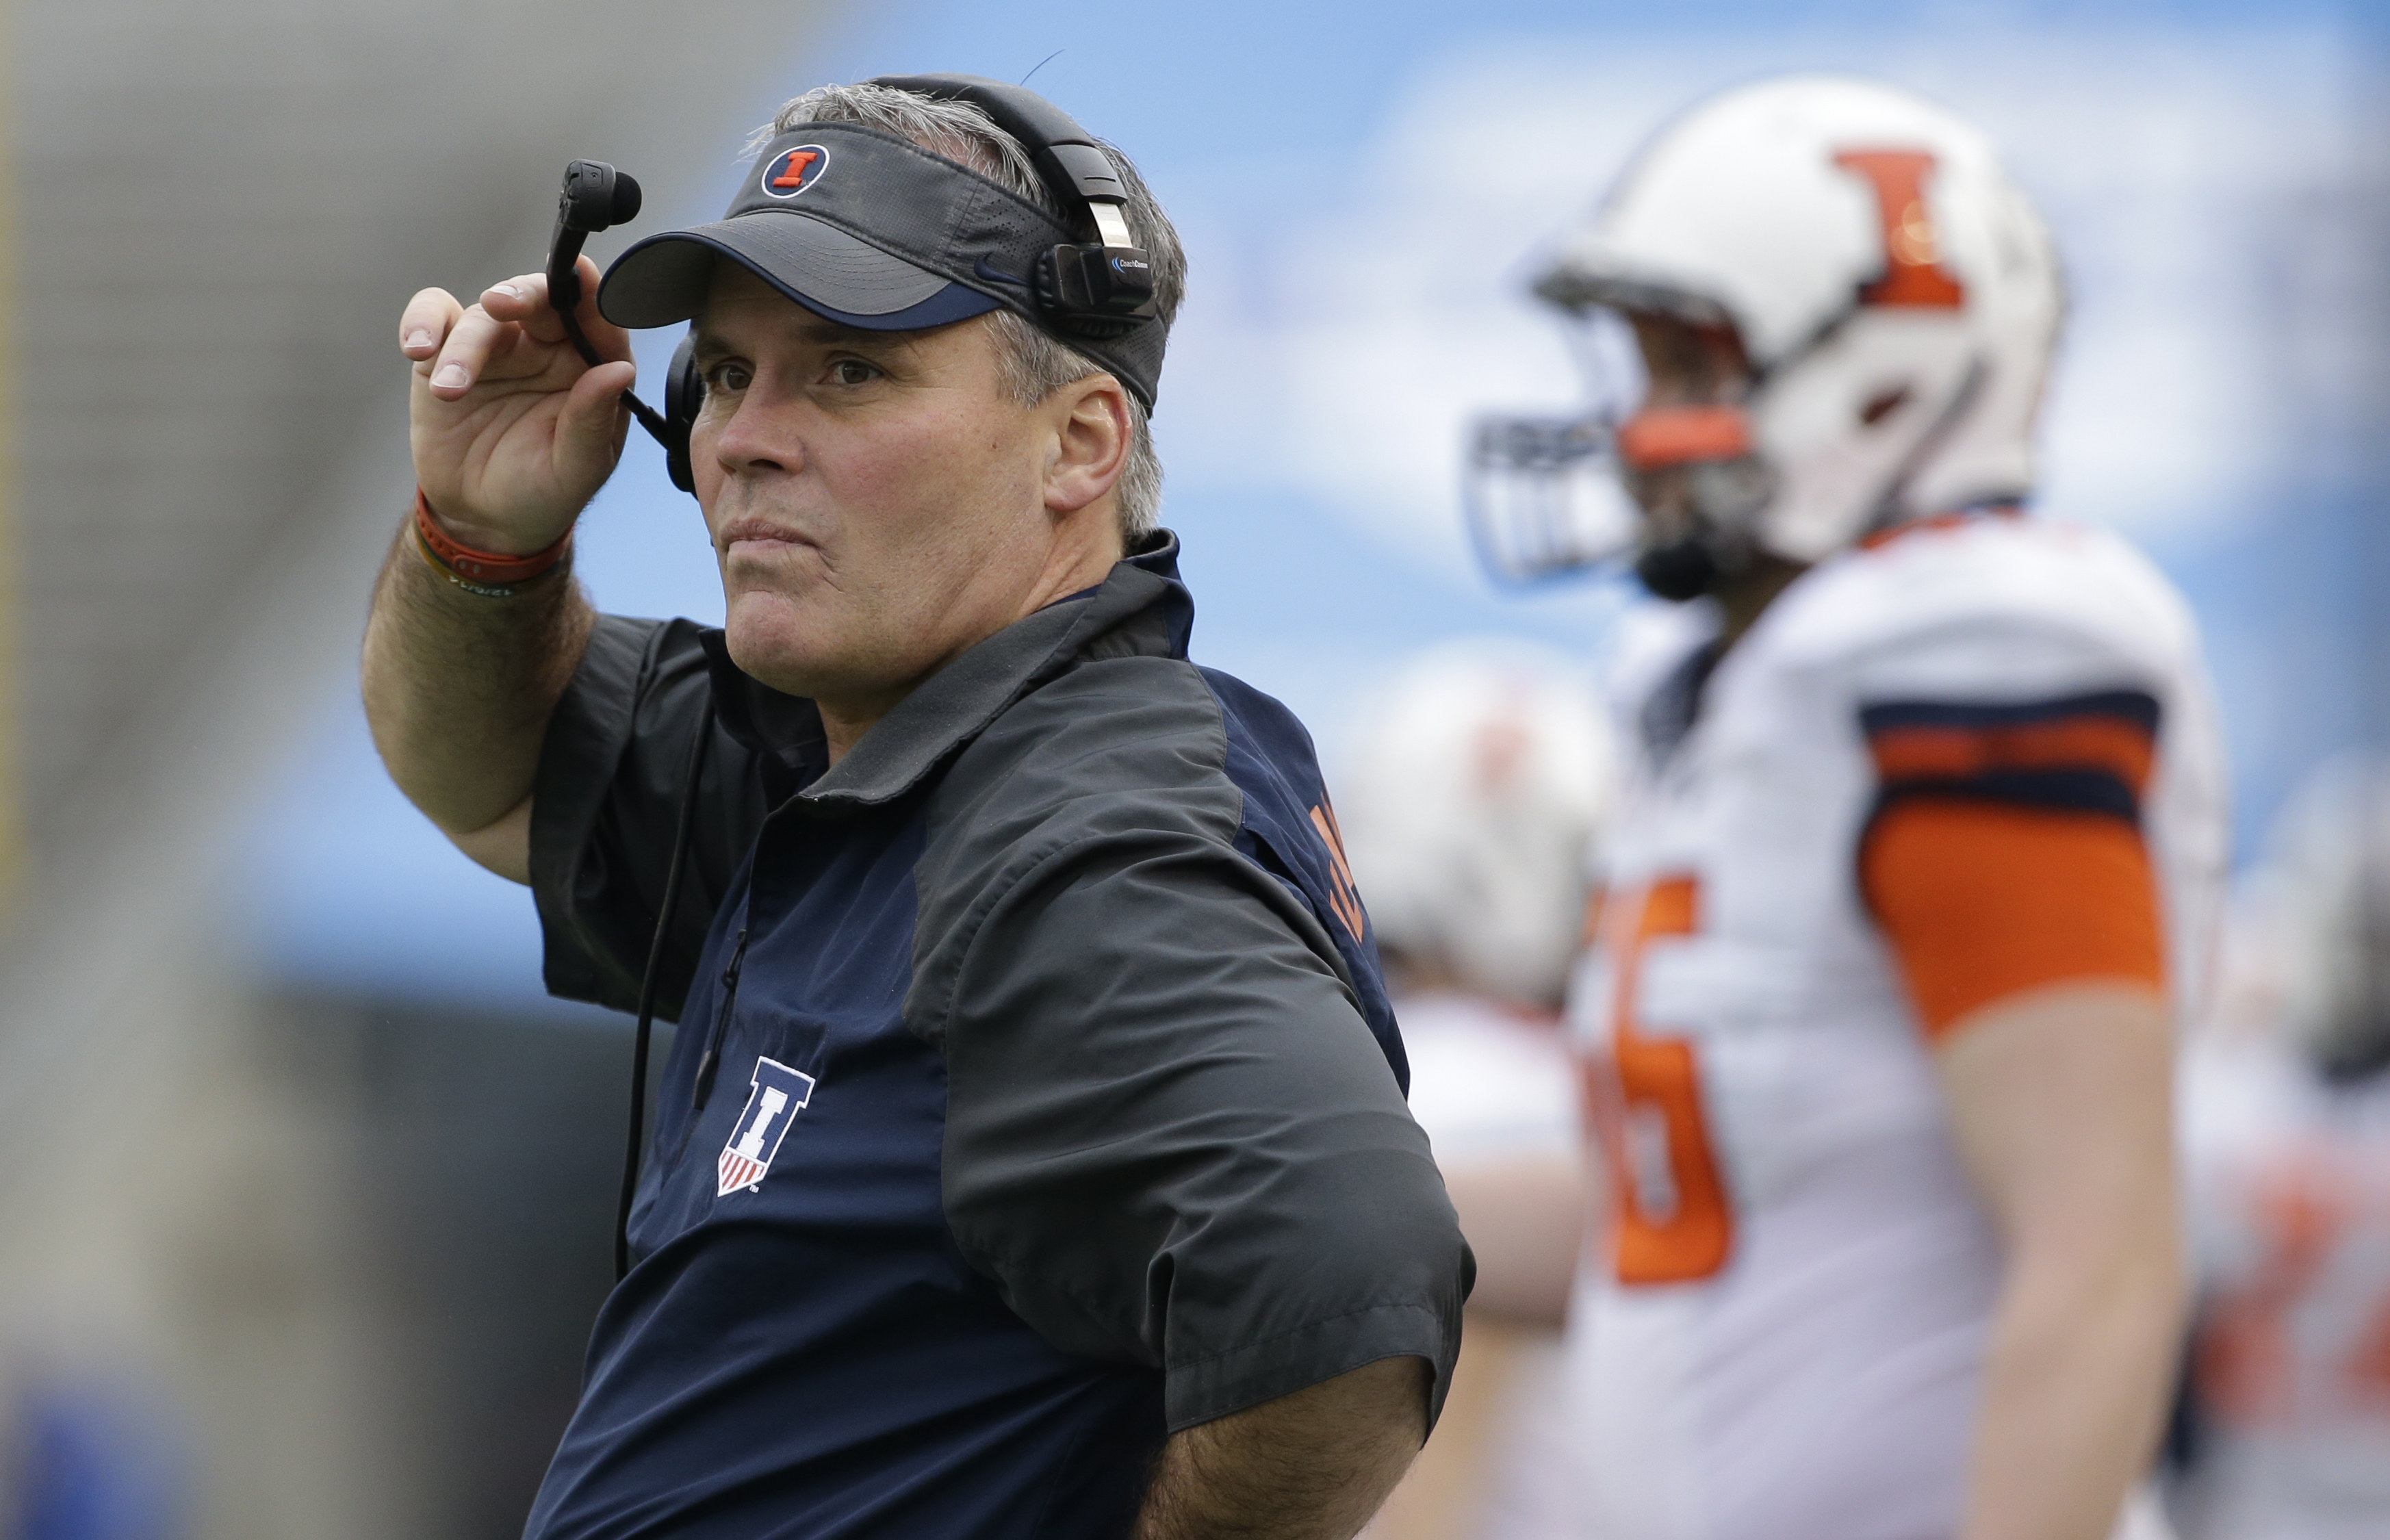 FILE - In this Dec. 26, 2014, file photo, University of Illinois head coach Tim Beckman watches from the sidelines during the Heart of Dallas Bowl NCAA college football game against Louisiana Tech in Dallas. Illinois fired football coach Tim Beckman Frida